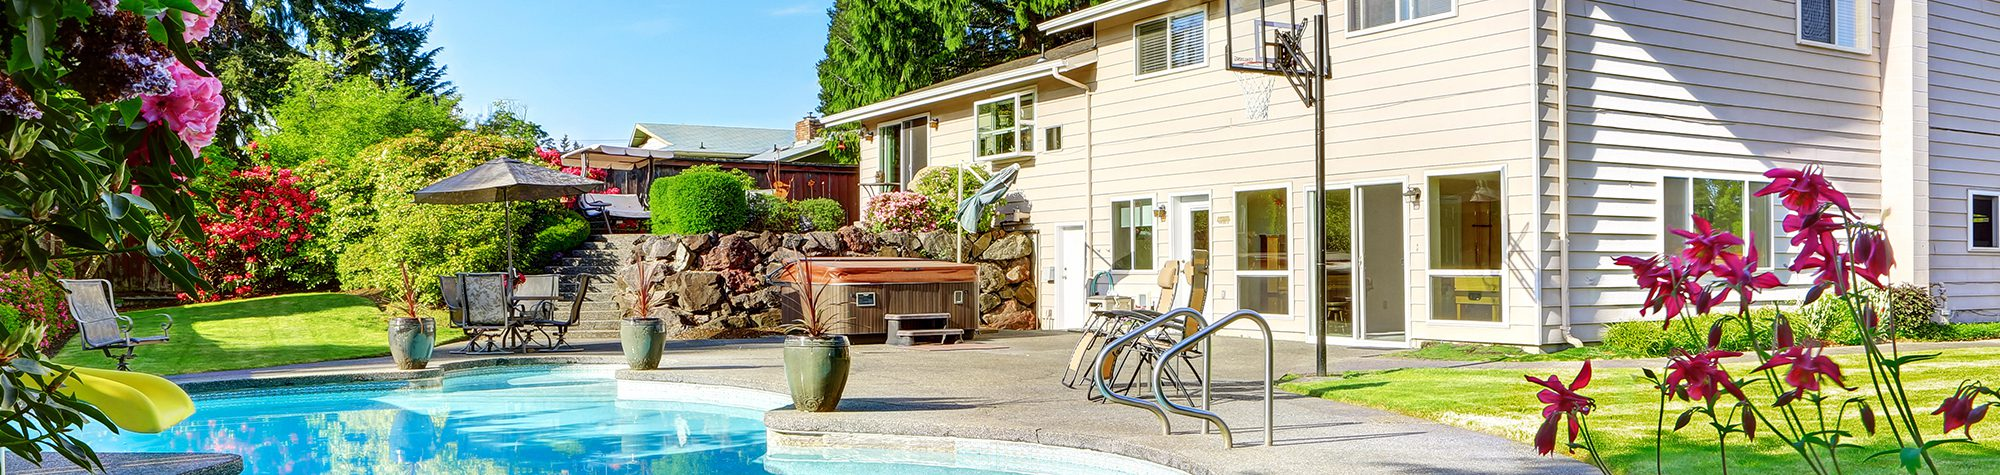 5 pool safety tips for keeping your backyard oasis safe this summer